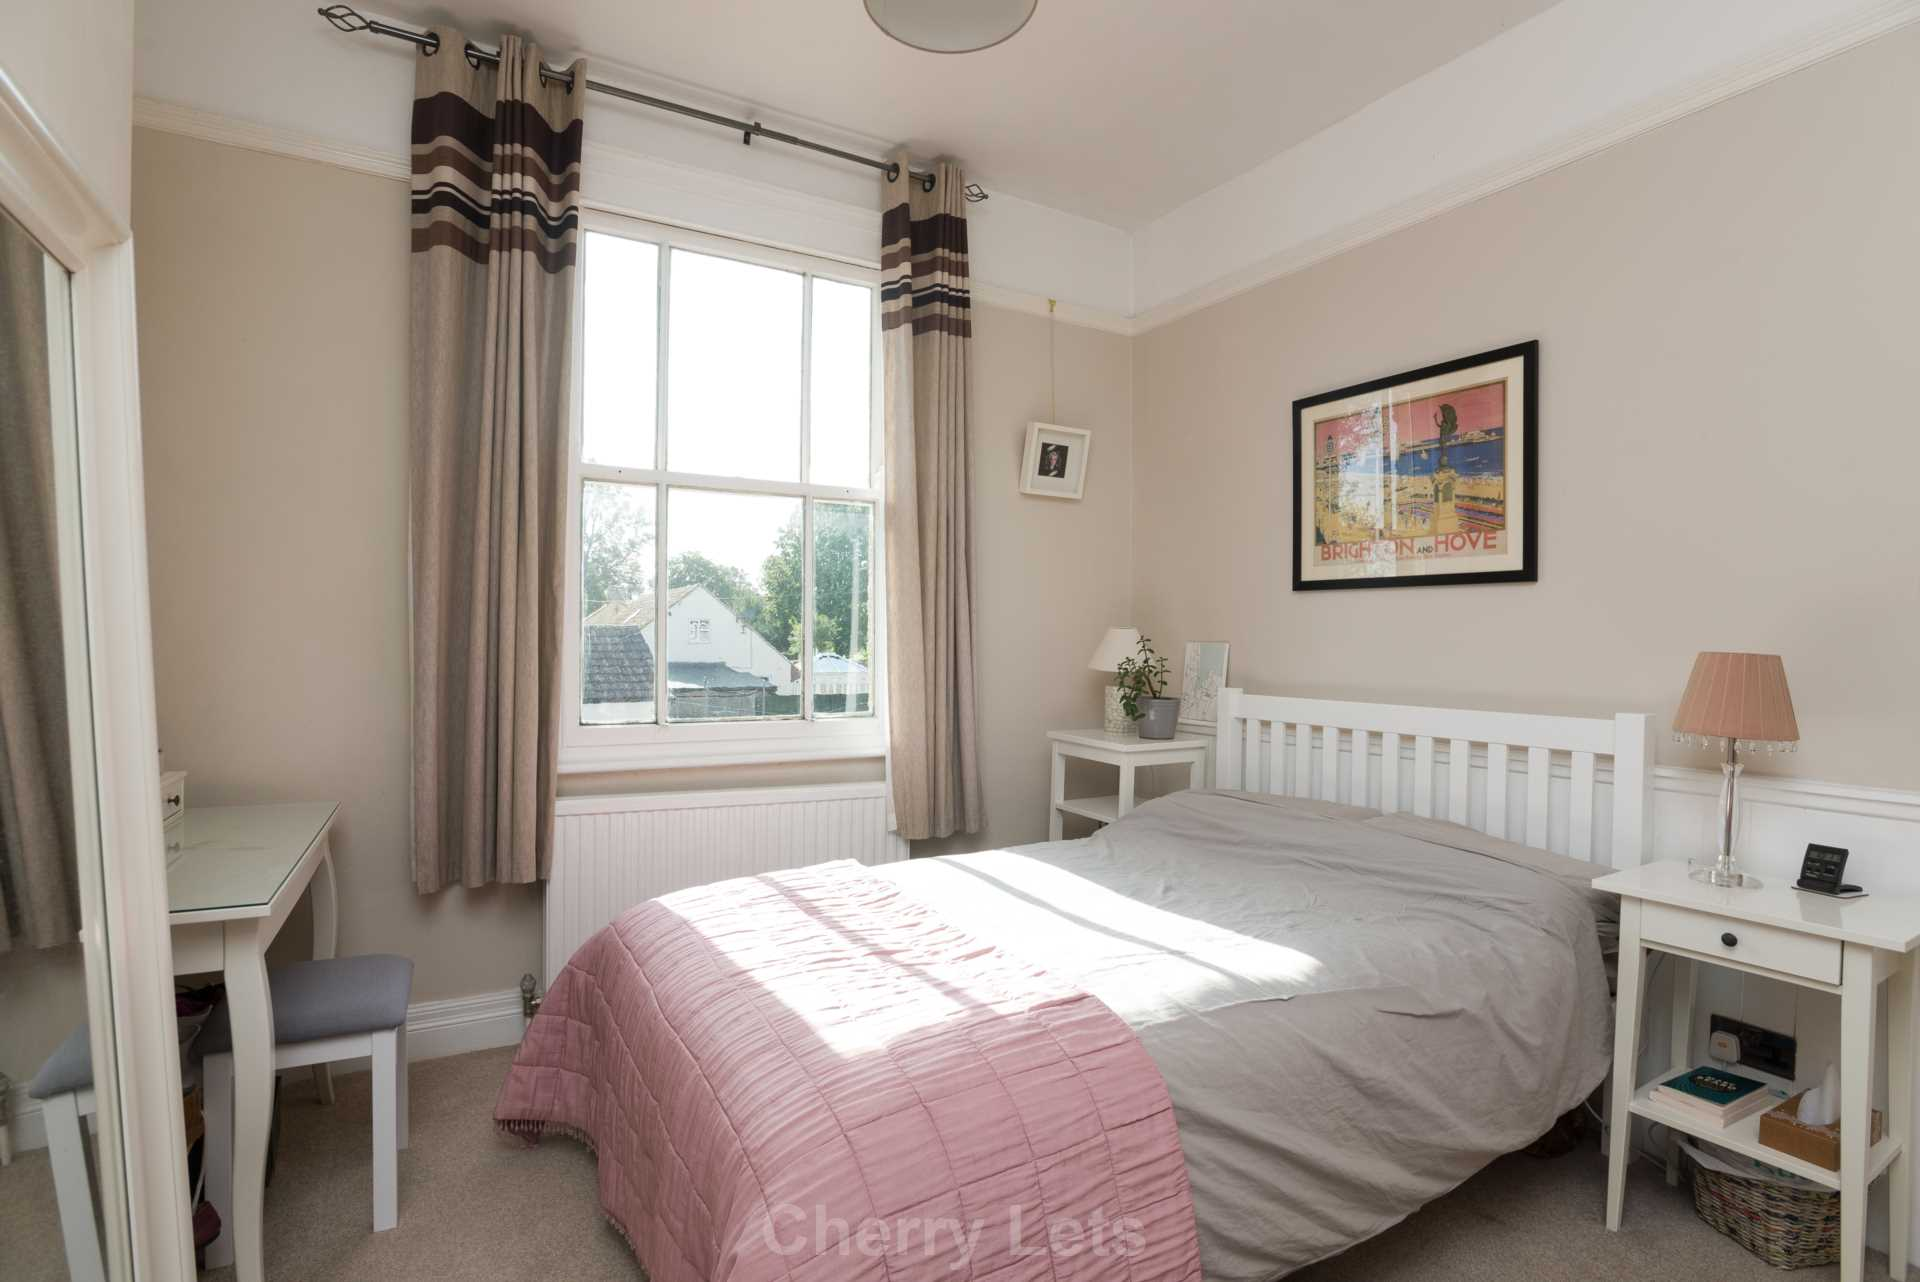 1 bed flat to rent in Bloxham Road, Banbury, OX16  - Property Image 7